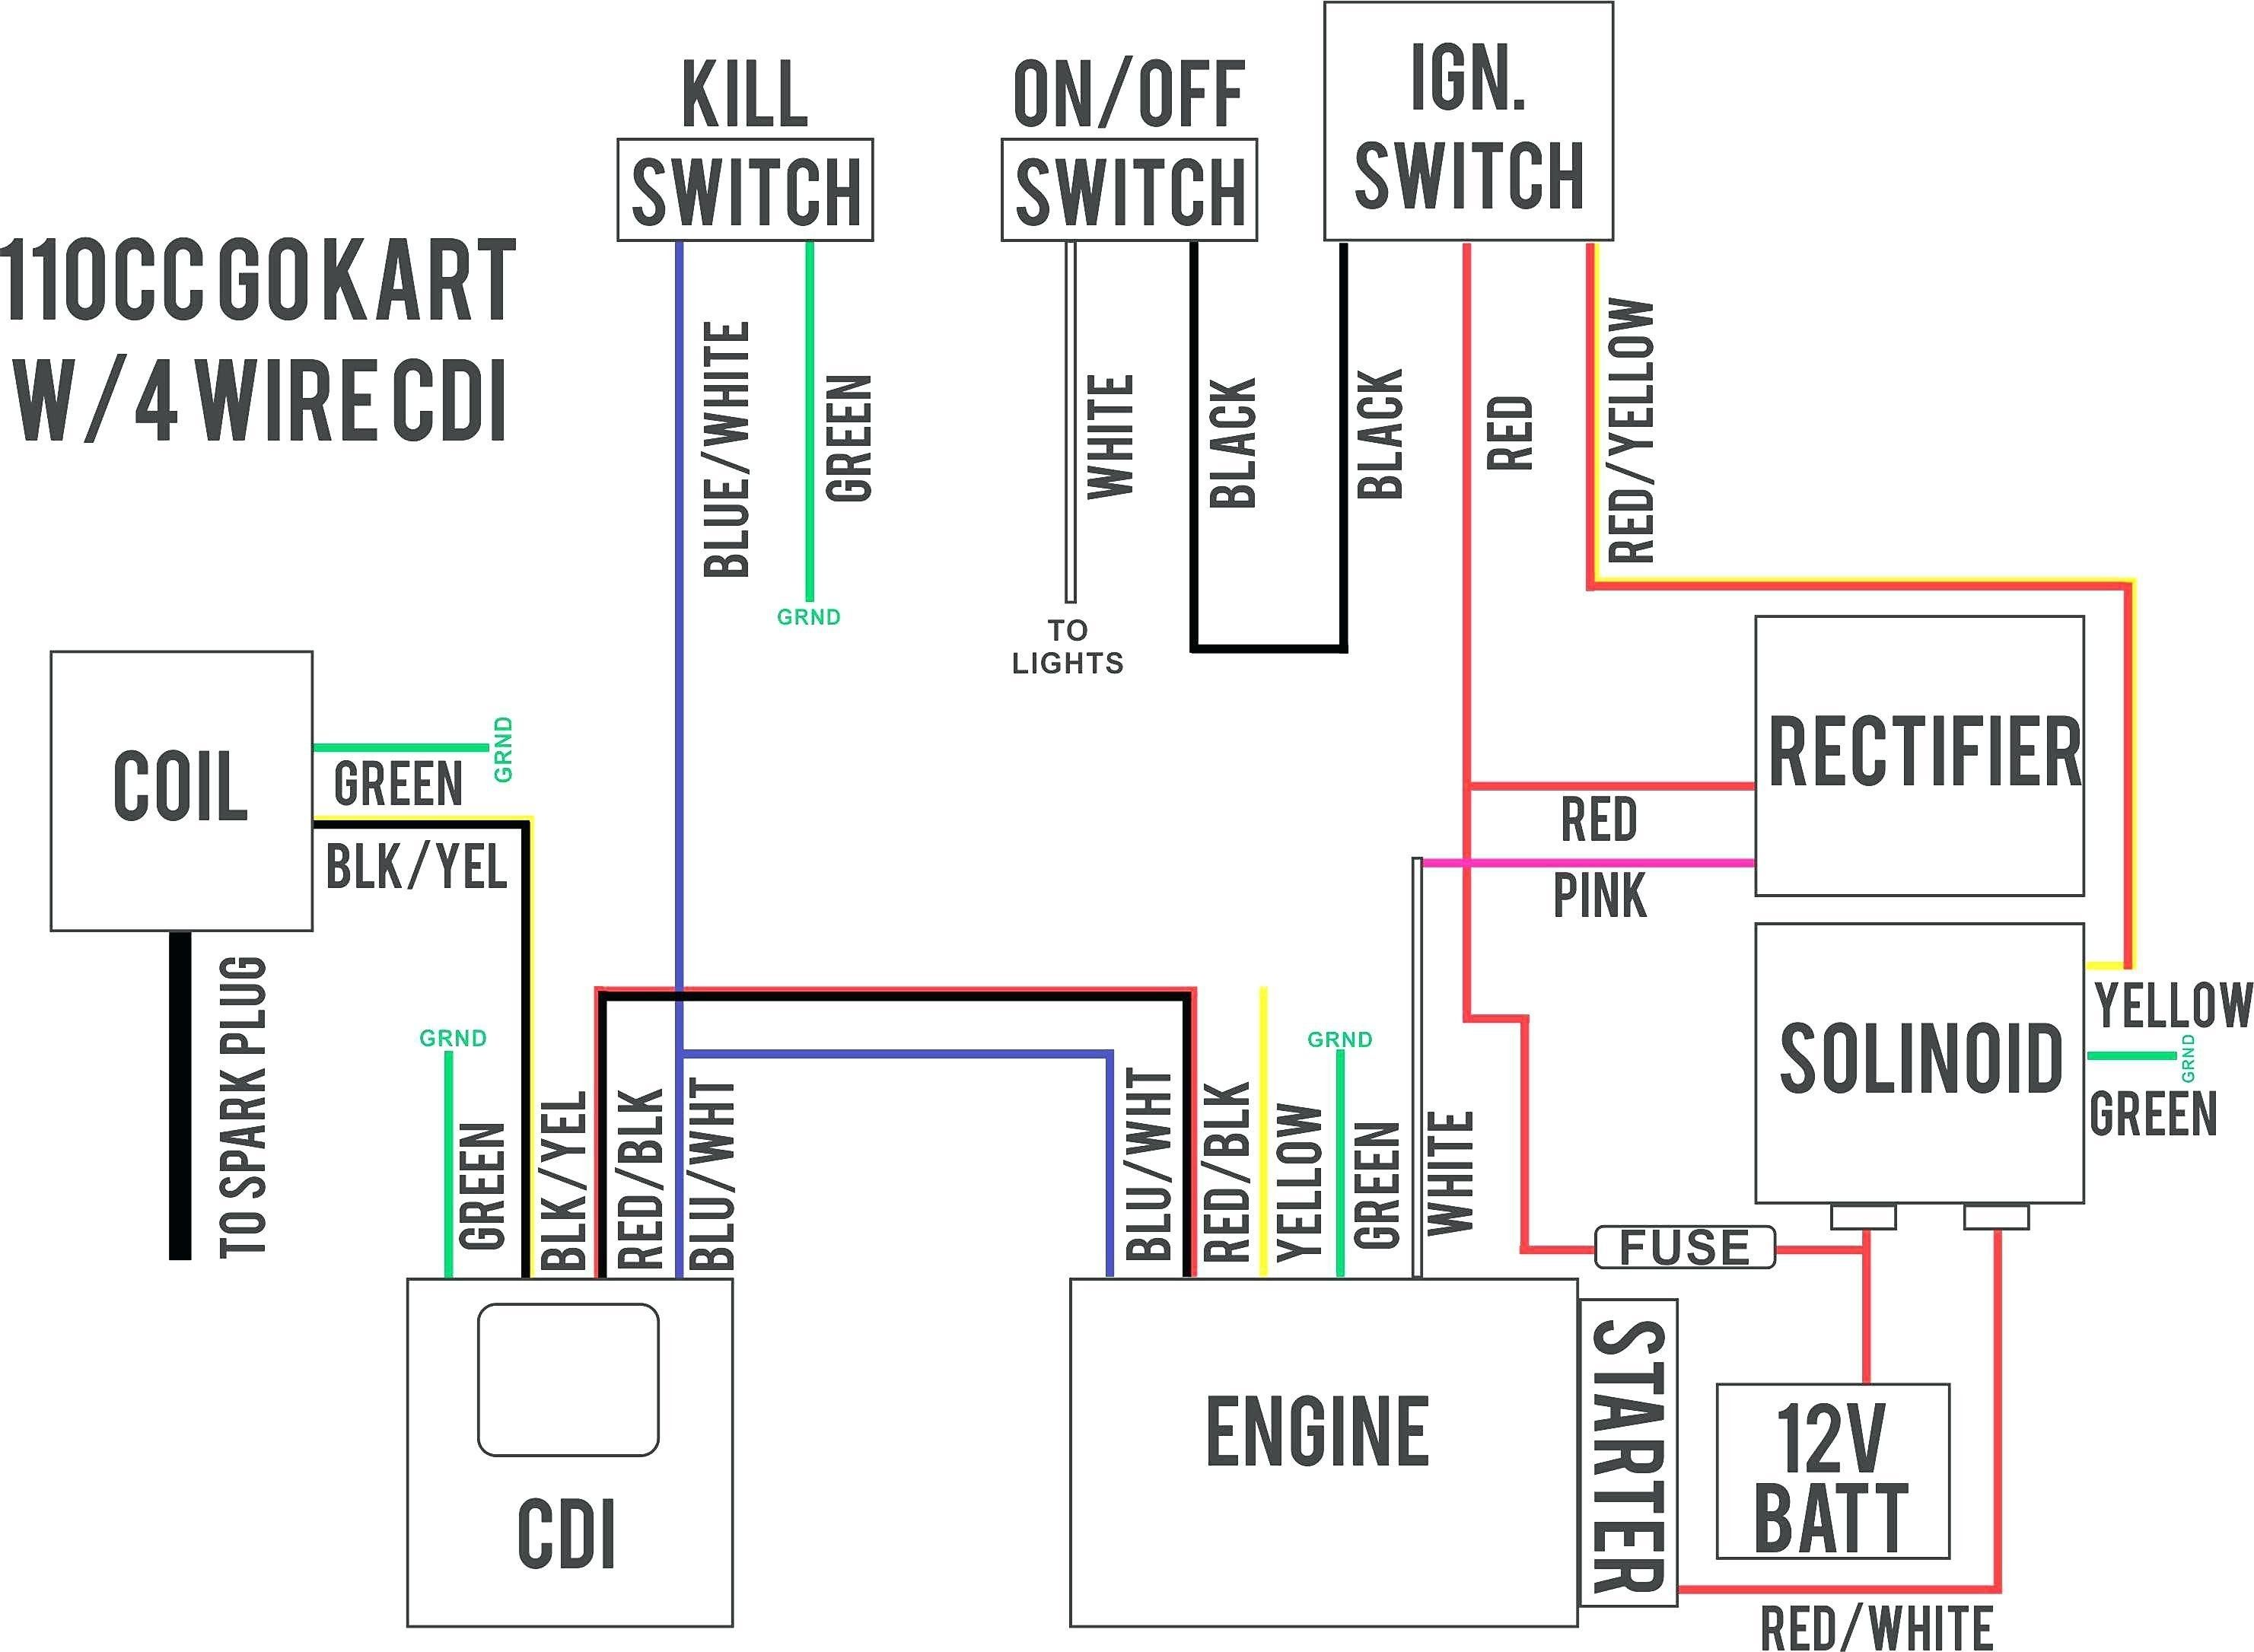 wiring diagram 125cc avt wiring diagram schematics50cc atv cdi wiring plug wiring diagram 1977 honda 125cc electrical diagram shineray atv wiring harness